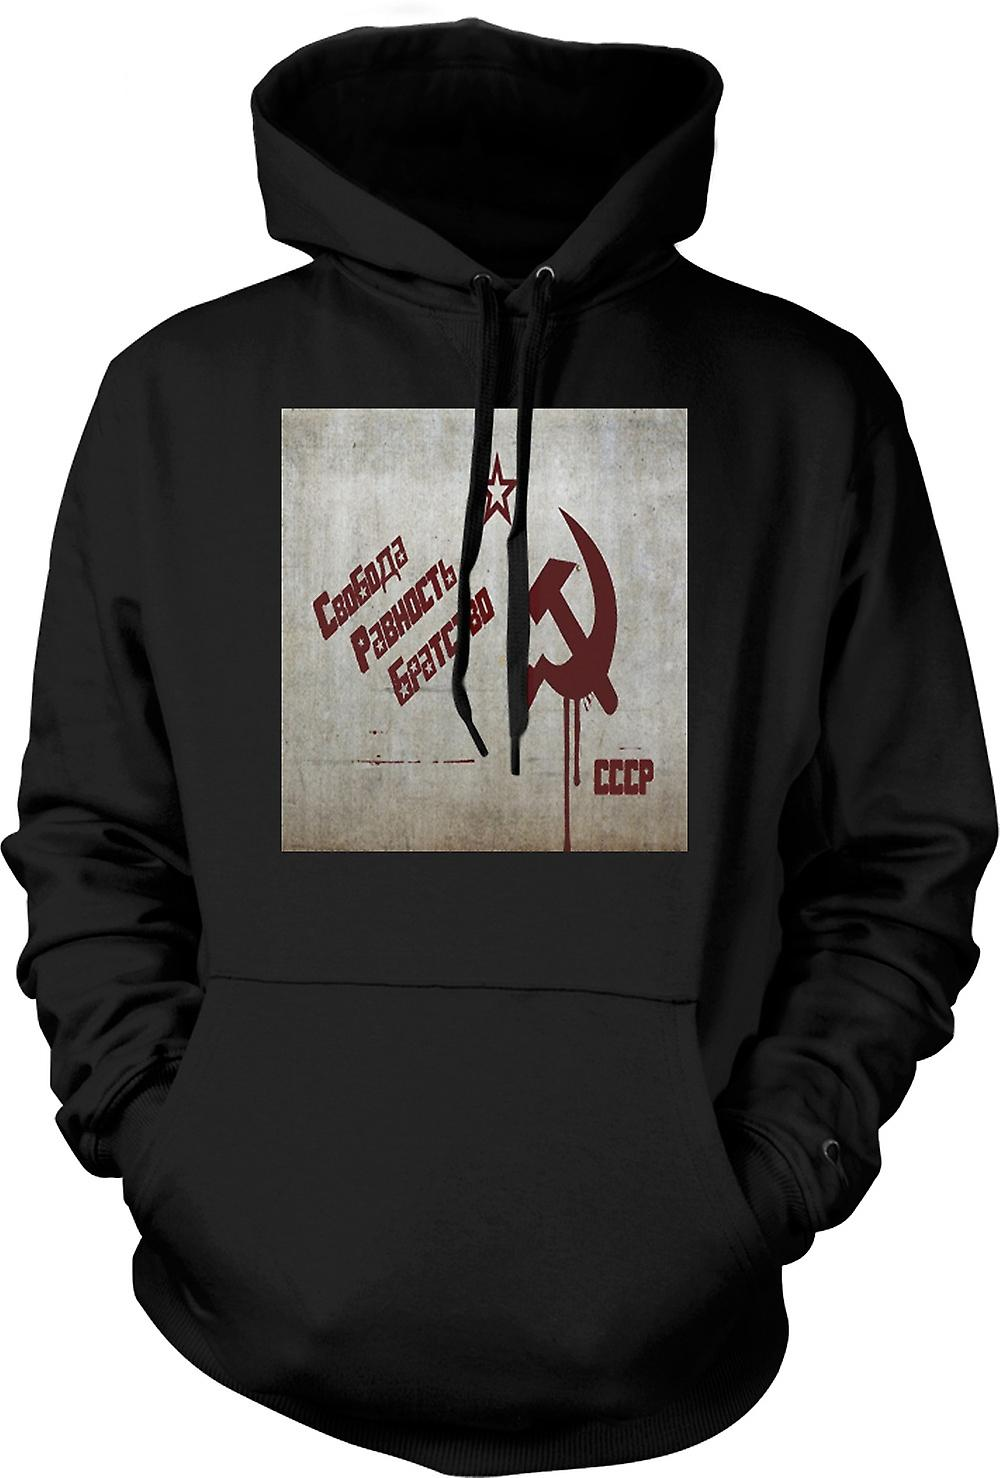 Mens Hoodie - Soviet Union - Russia - Cool Design